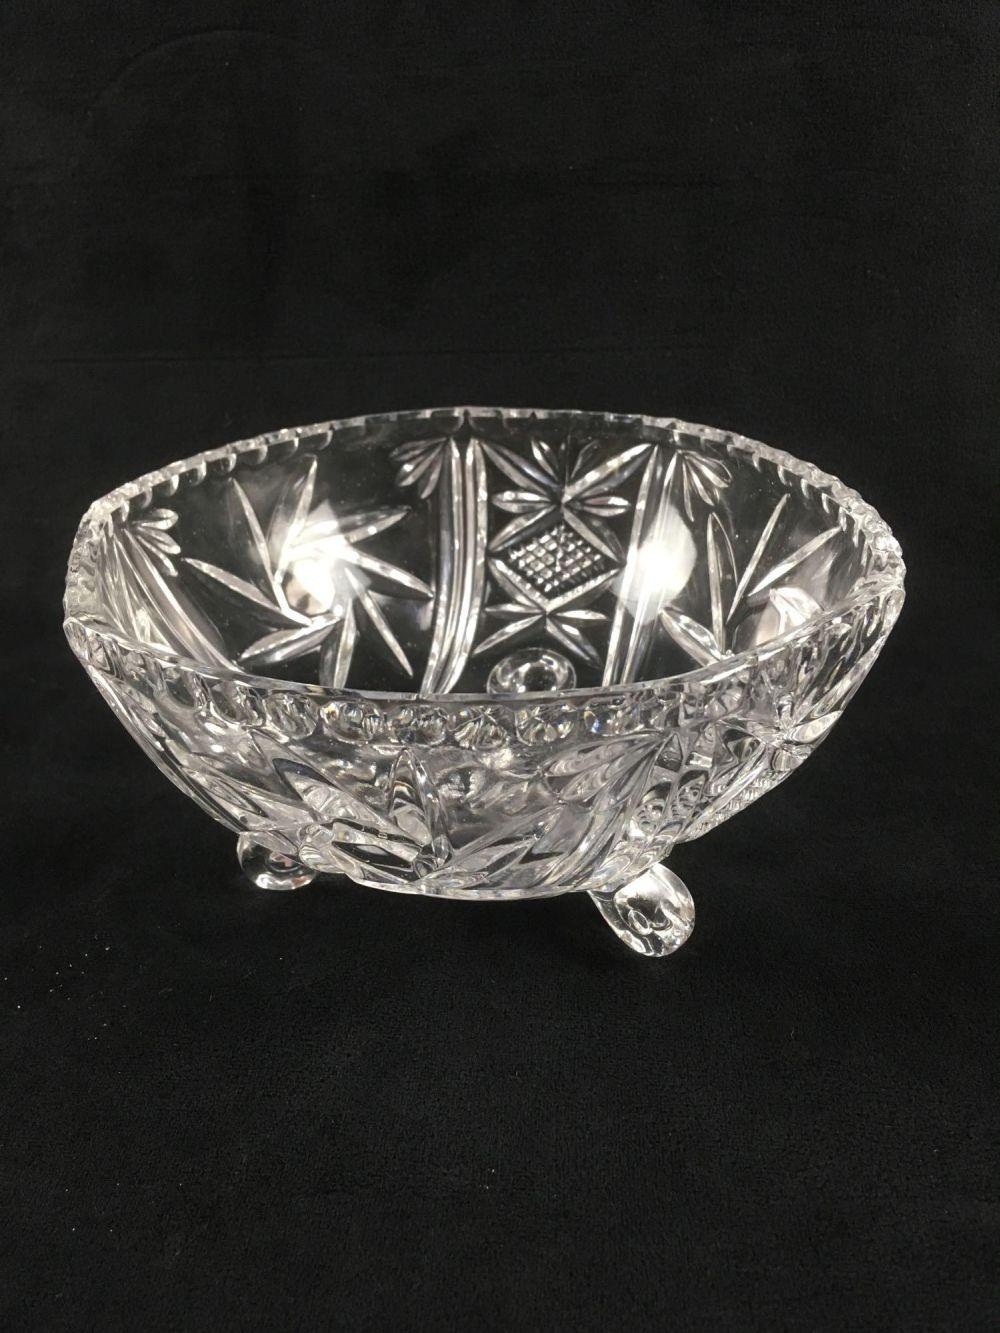 Lot 351: Clear Crystal Glass Footed Serving Bowl